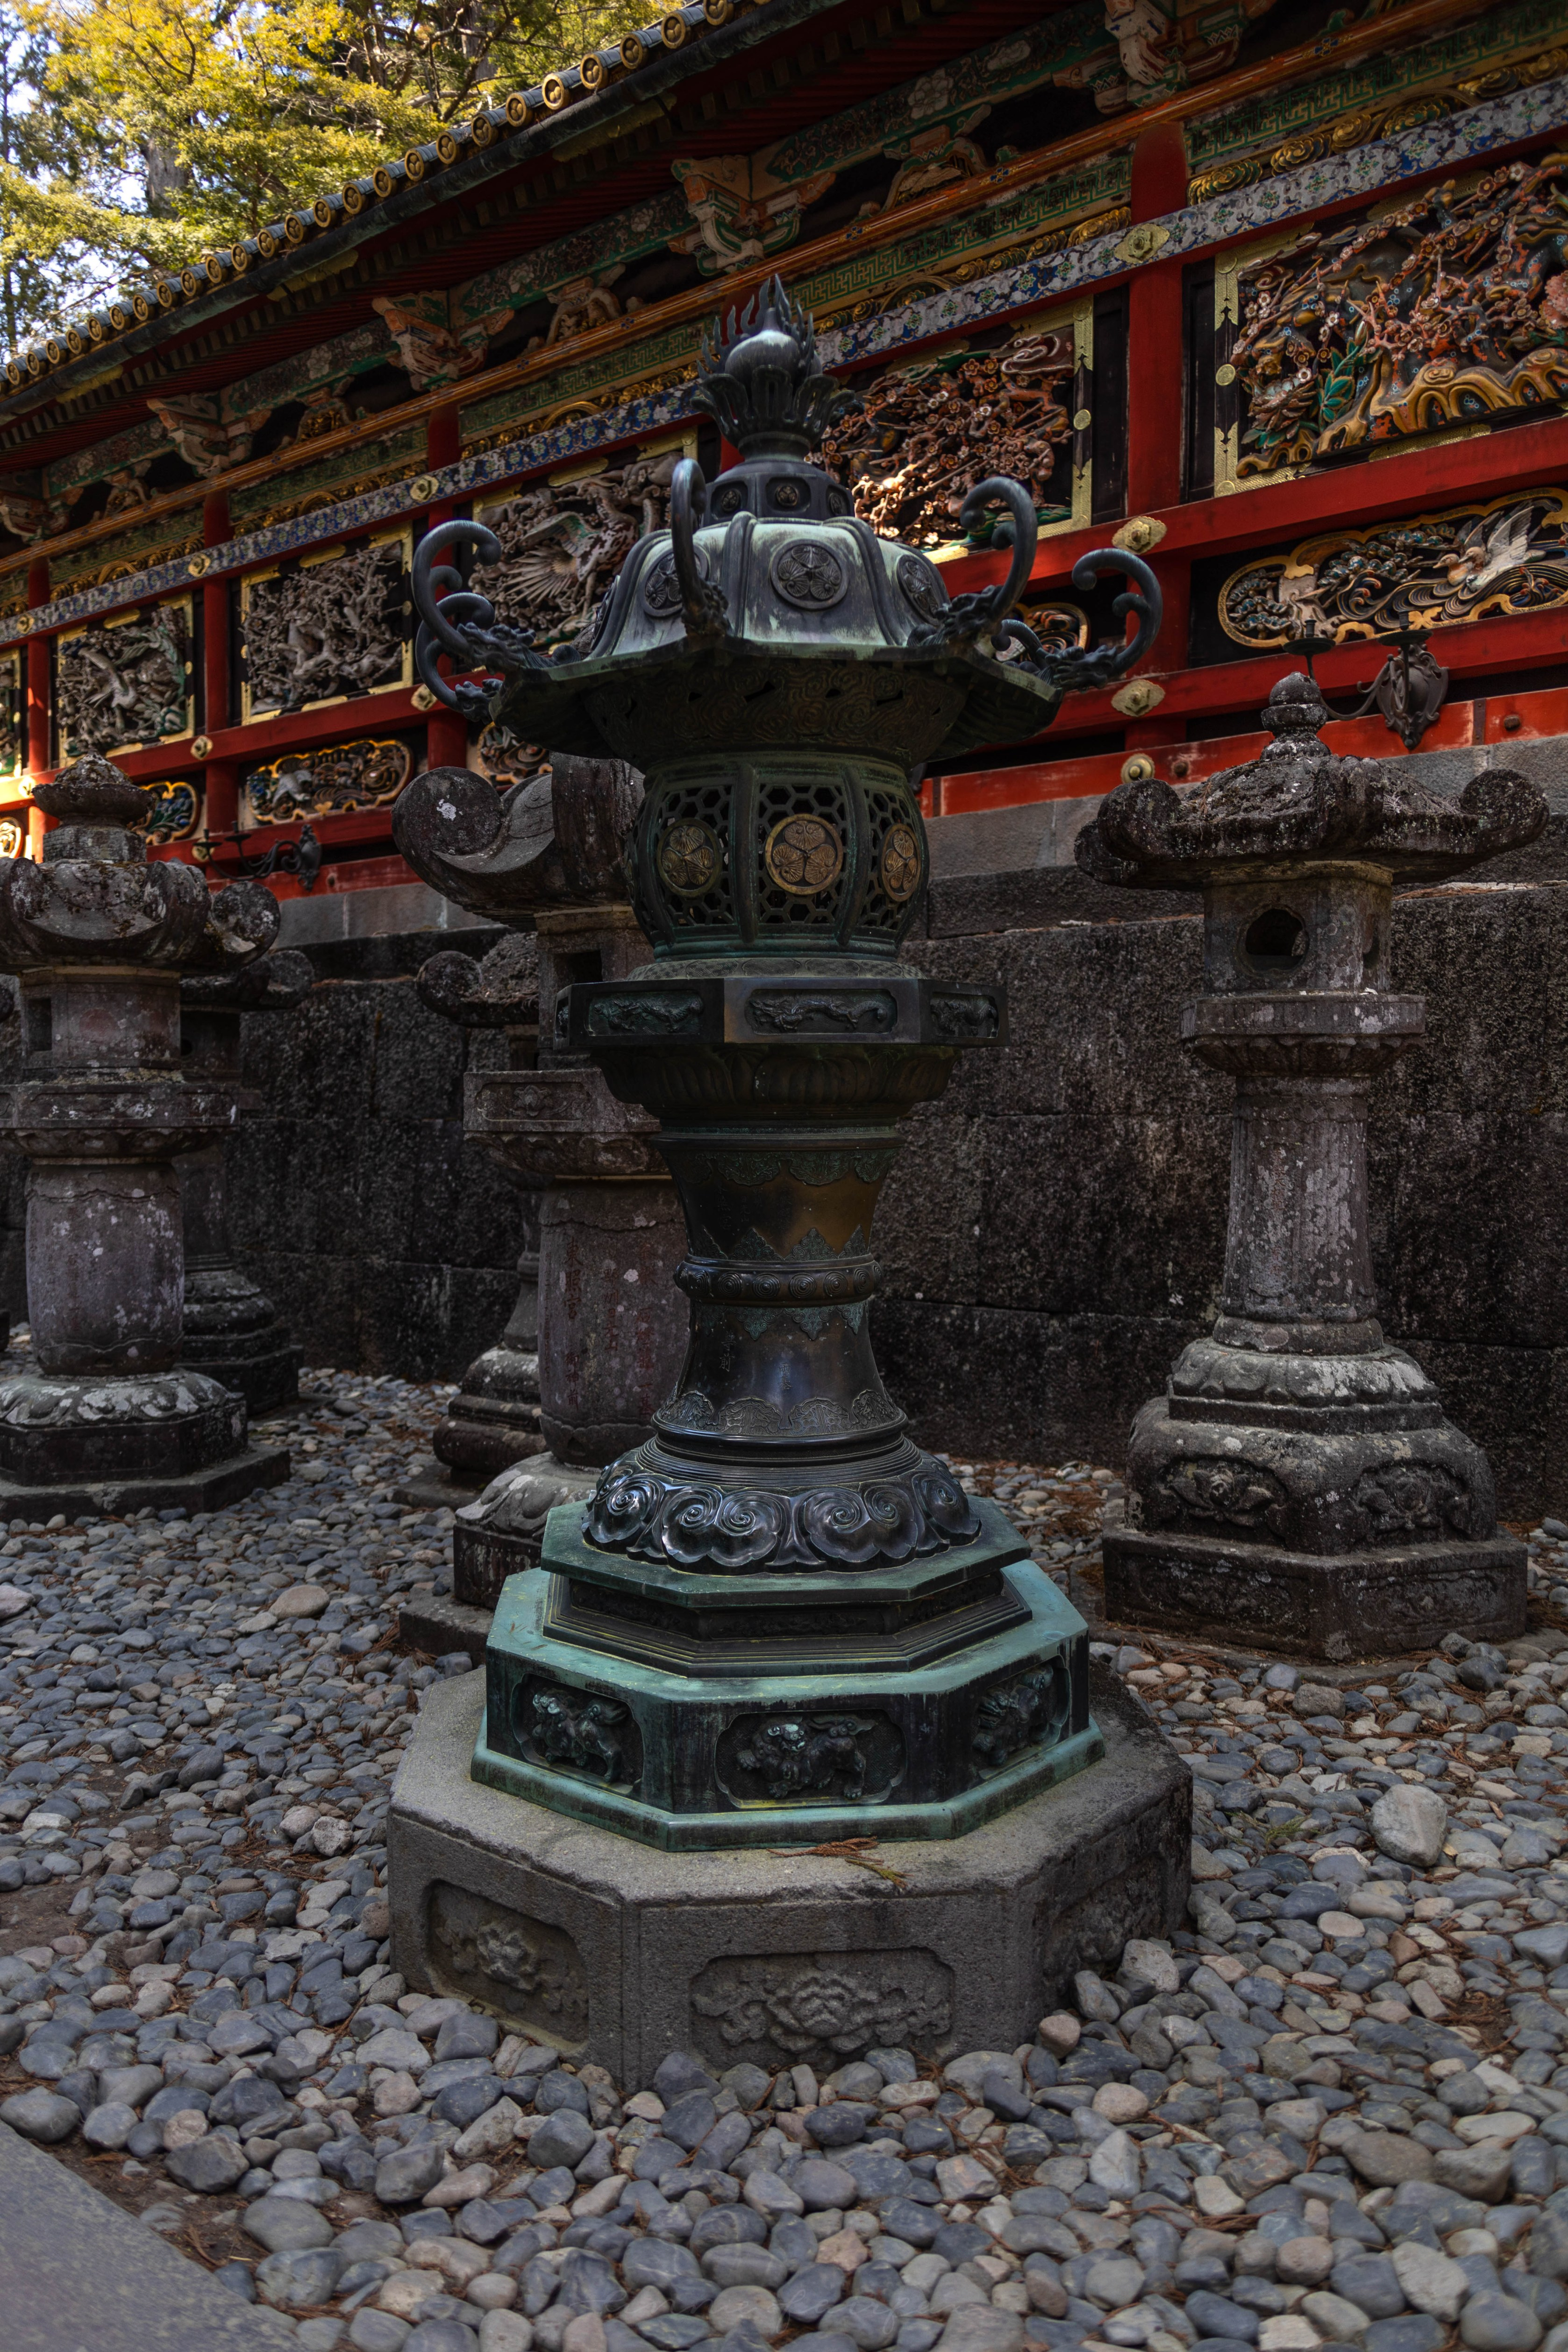 Stone Lanterns in Nikko, Japan, the Ultimate Travel Guide Written, Researched, and Photographed by Travel Writer & Photographer Annie Fairfax